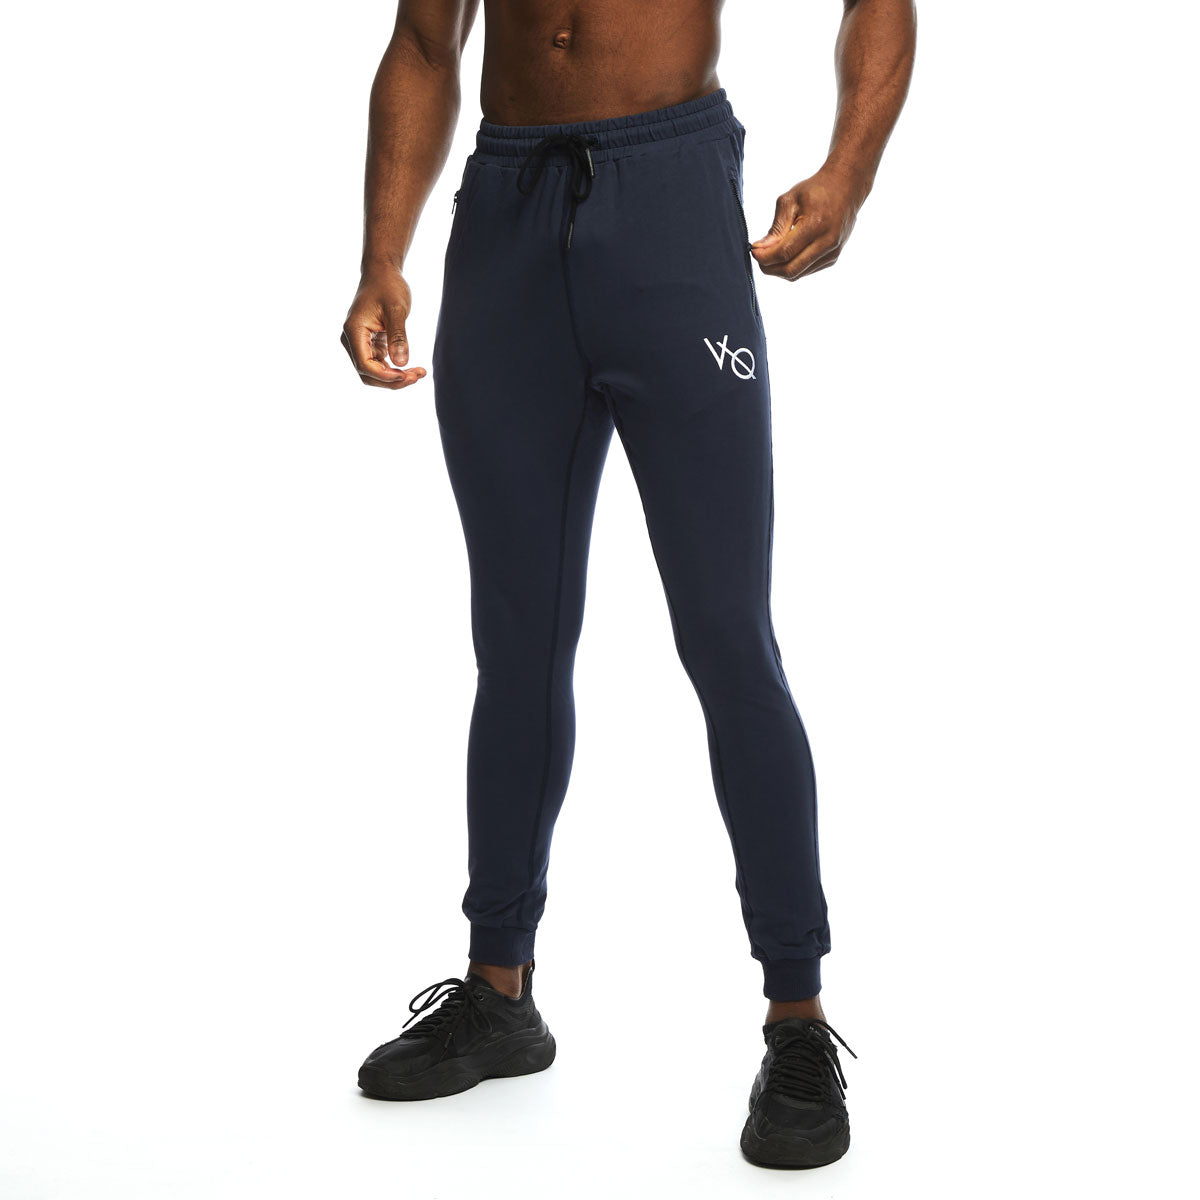 VQFIT Navy Eclipse Tapered Sweatpants